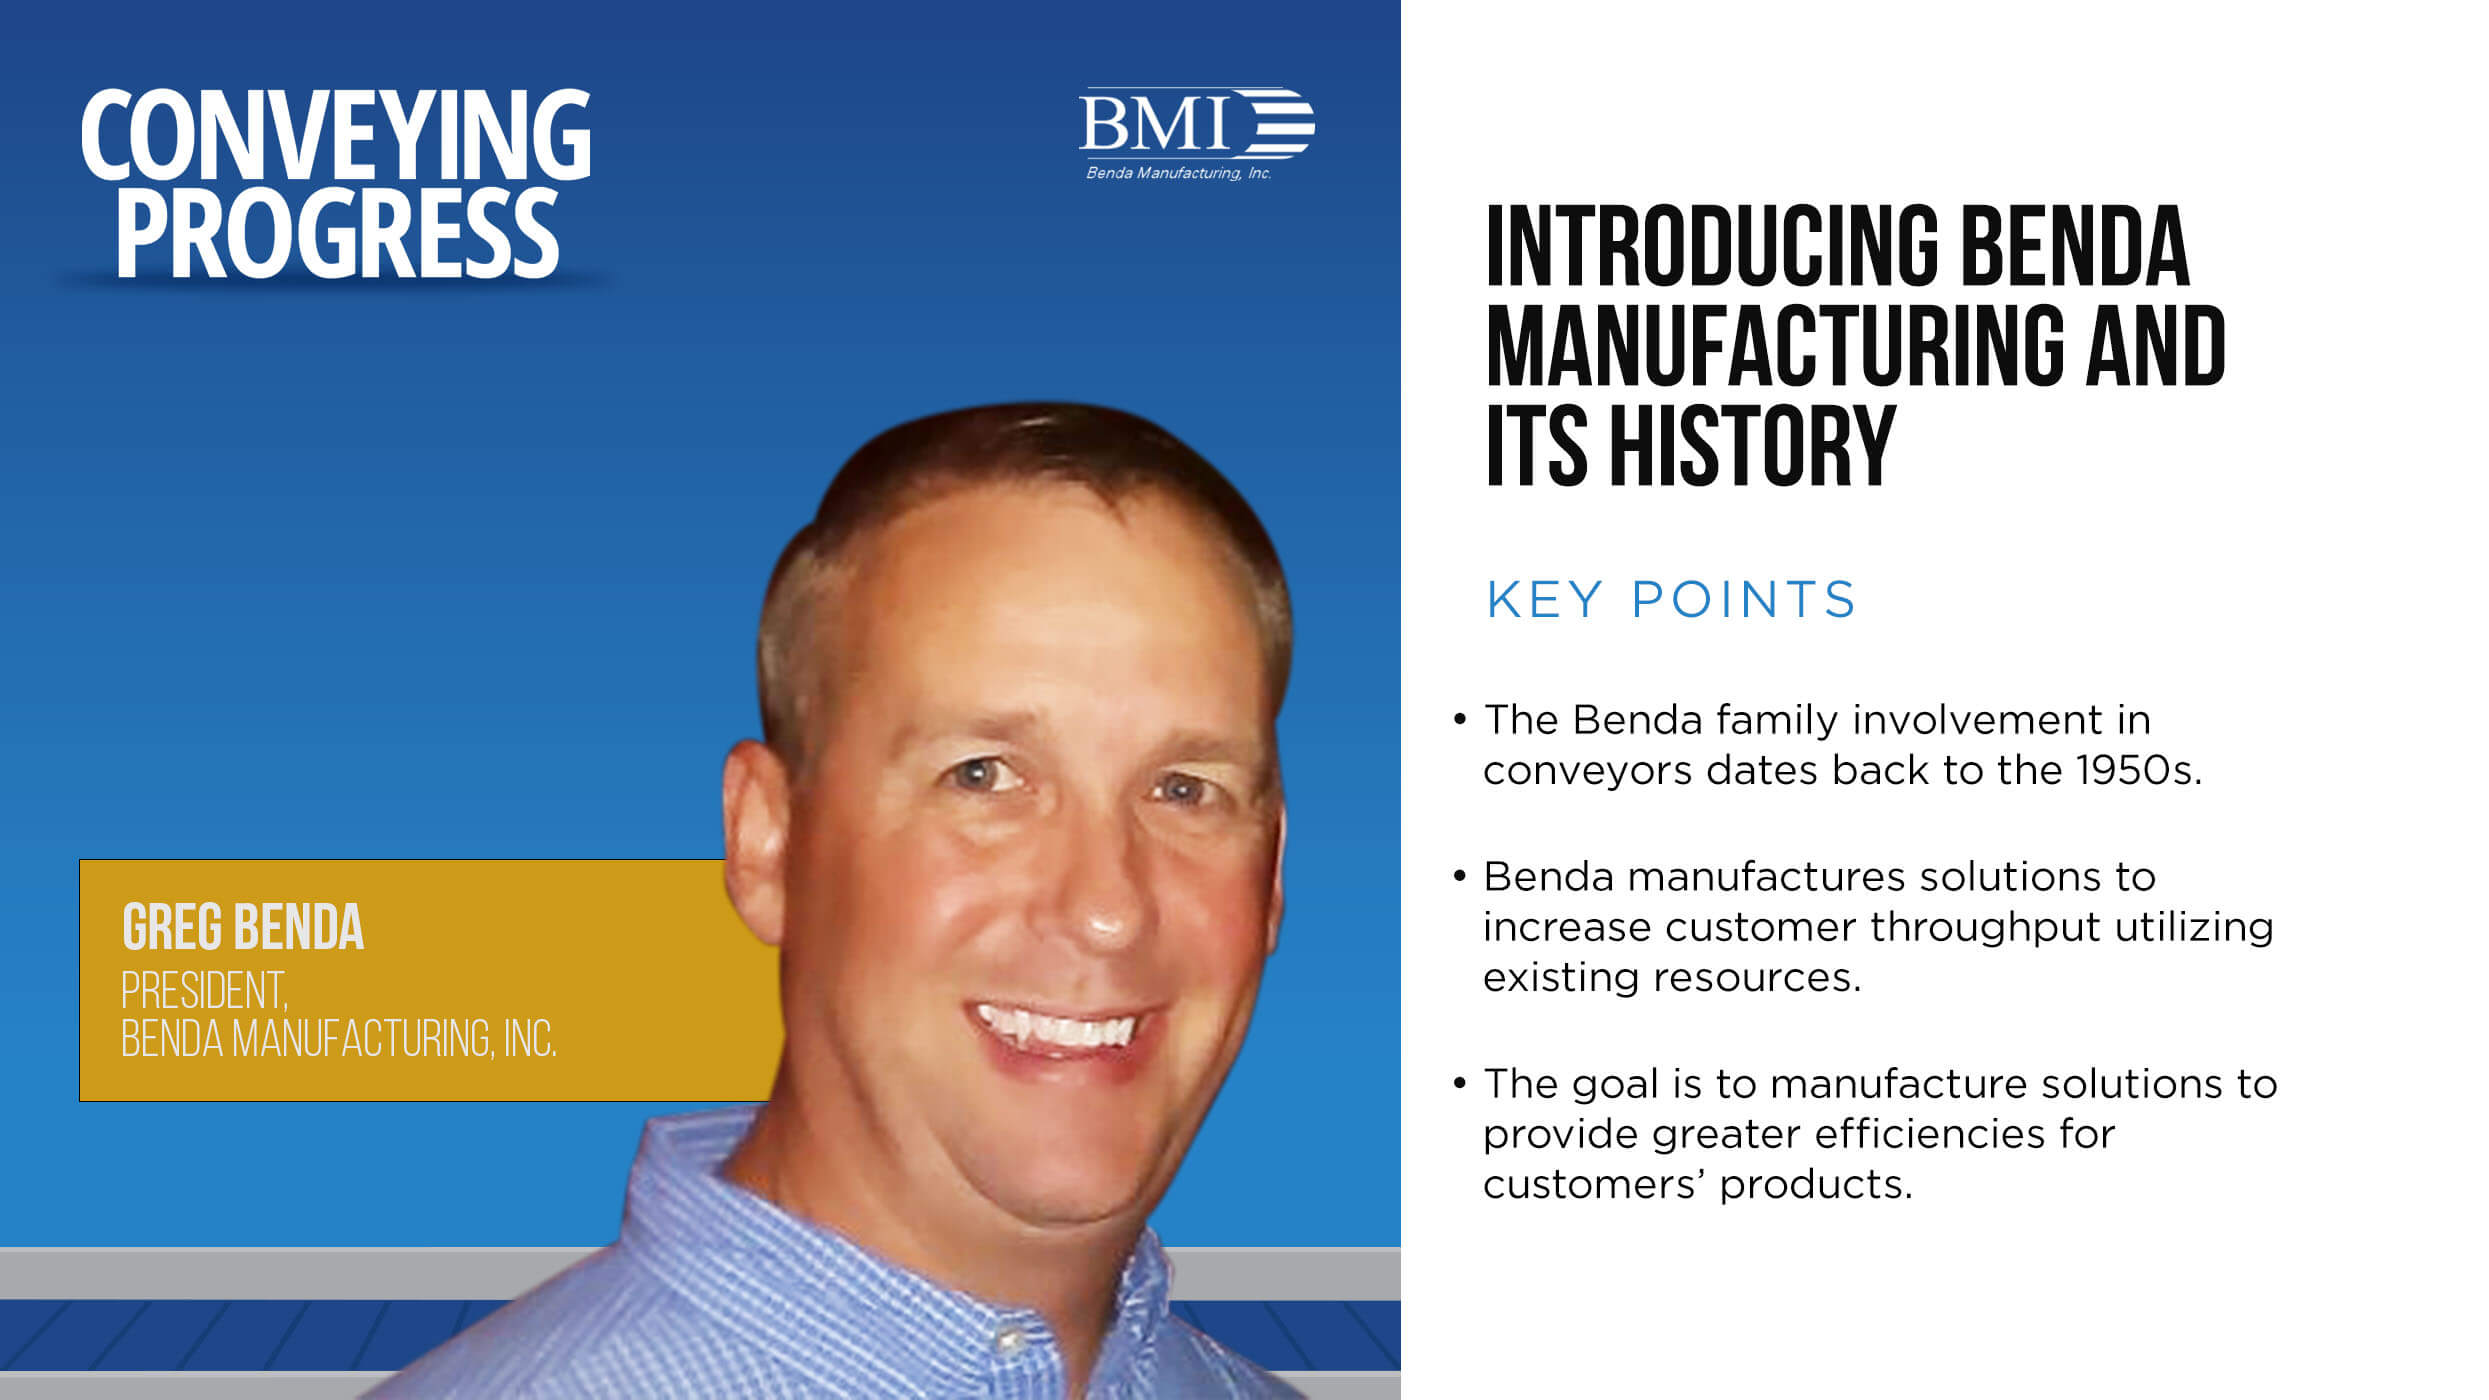 Conveying Progress: Introducing Benda Manufacturing and Its History